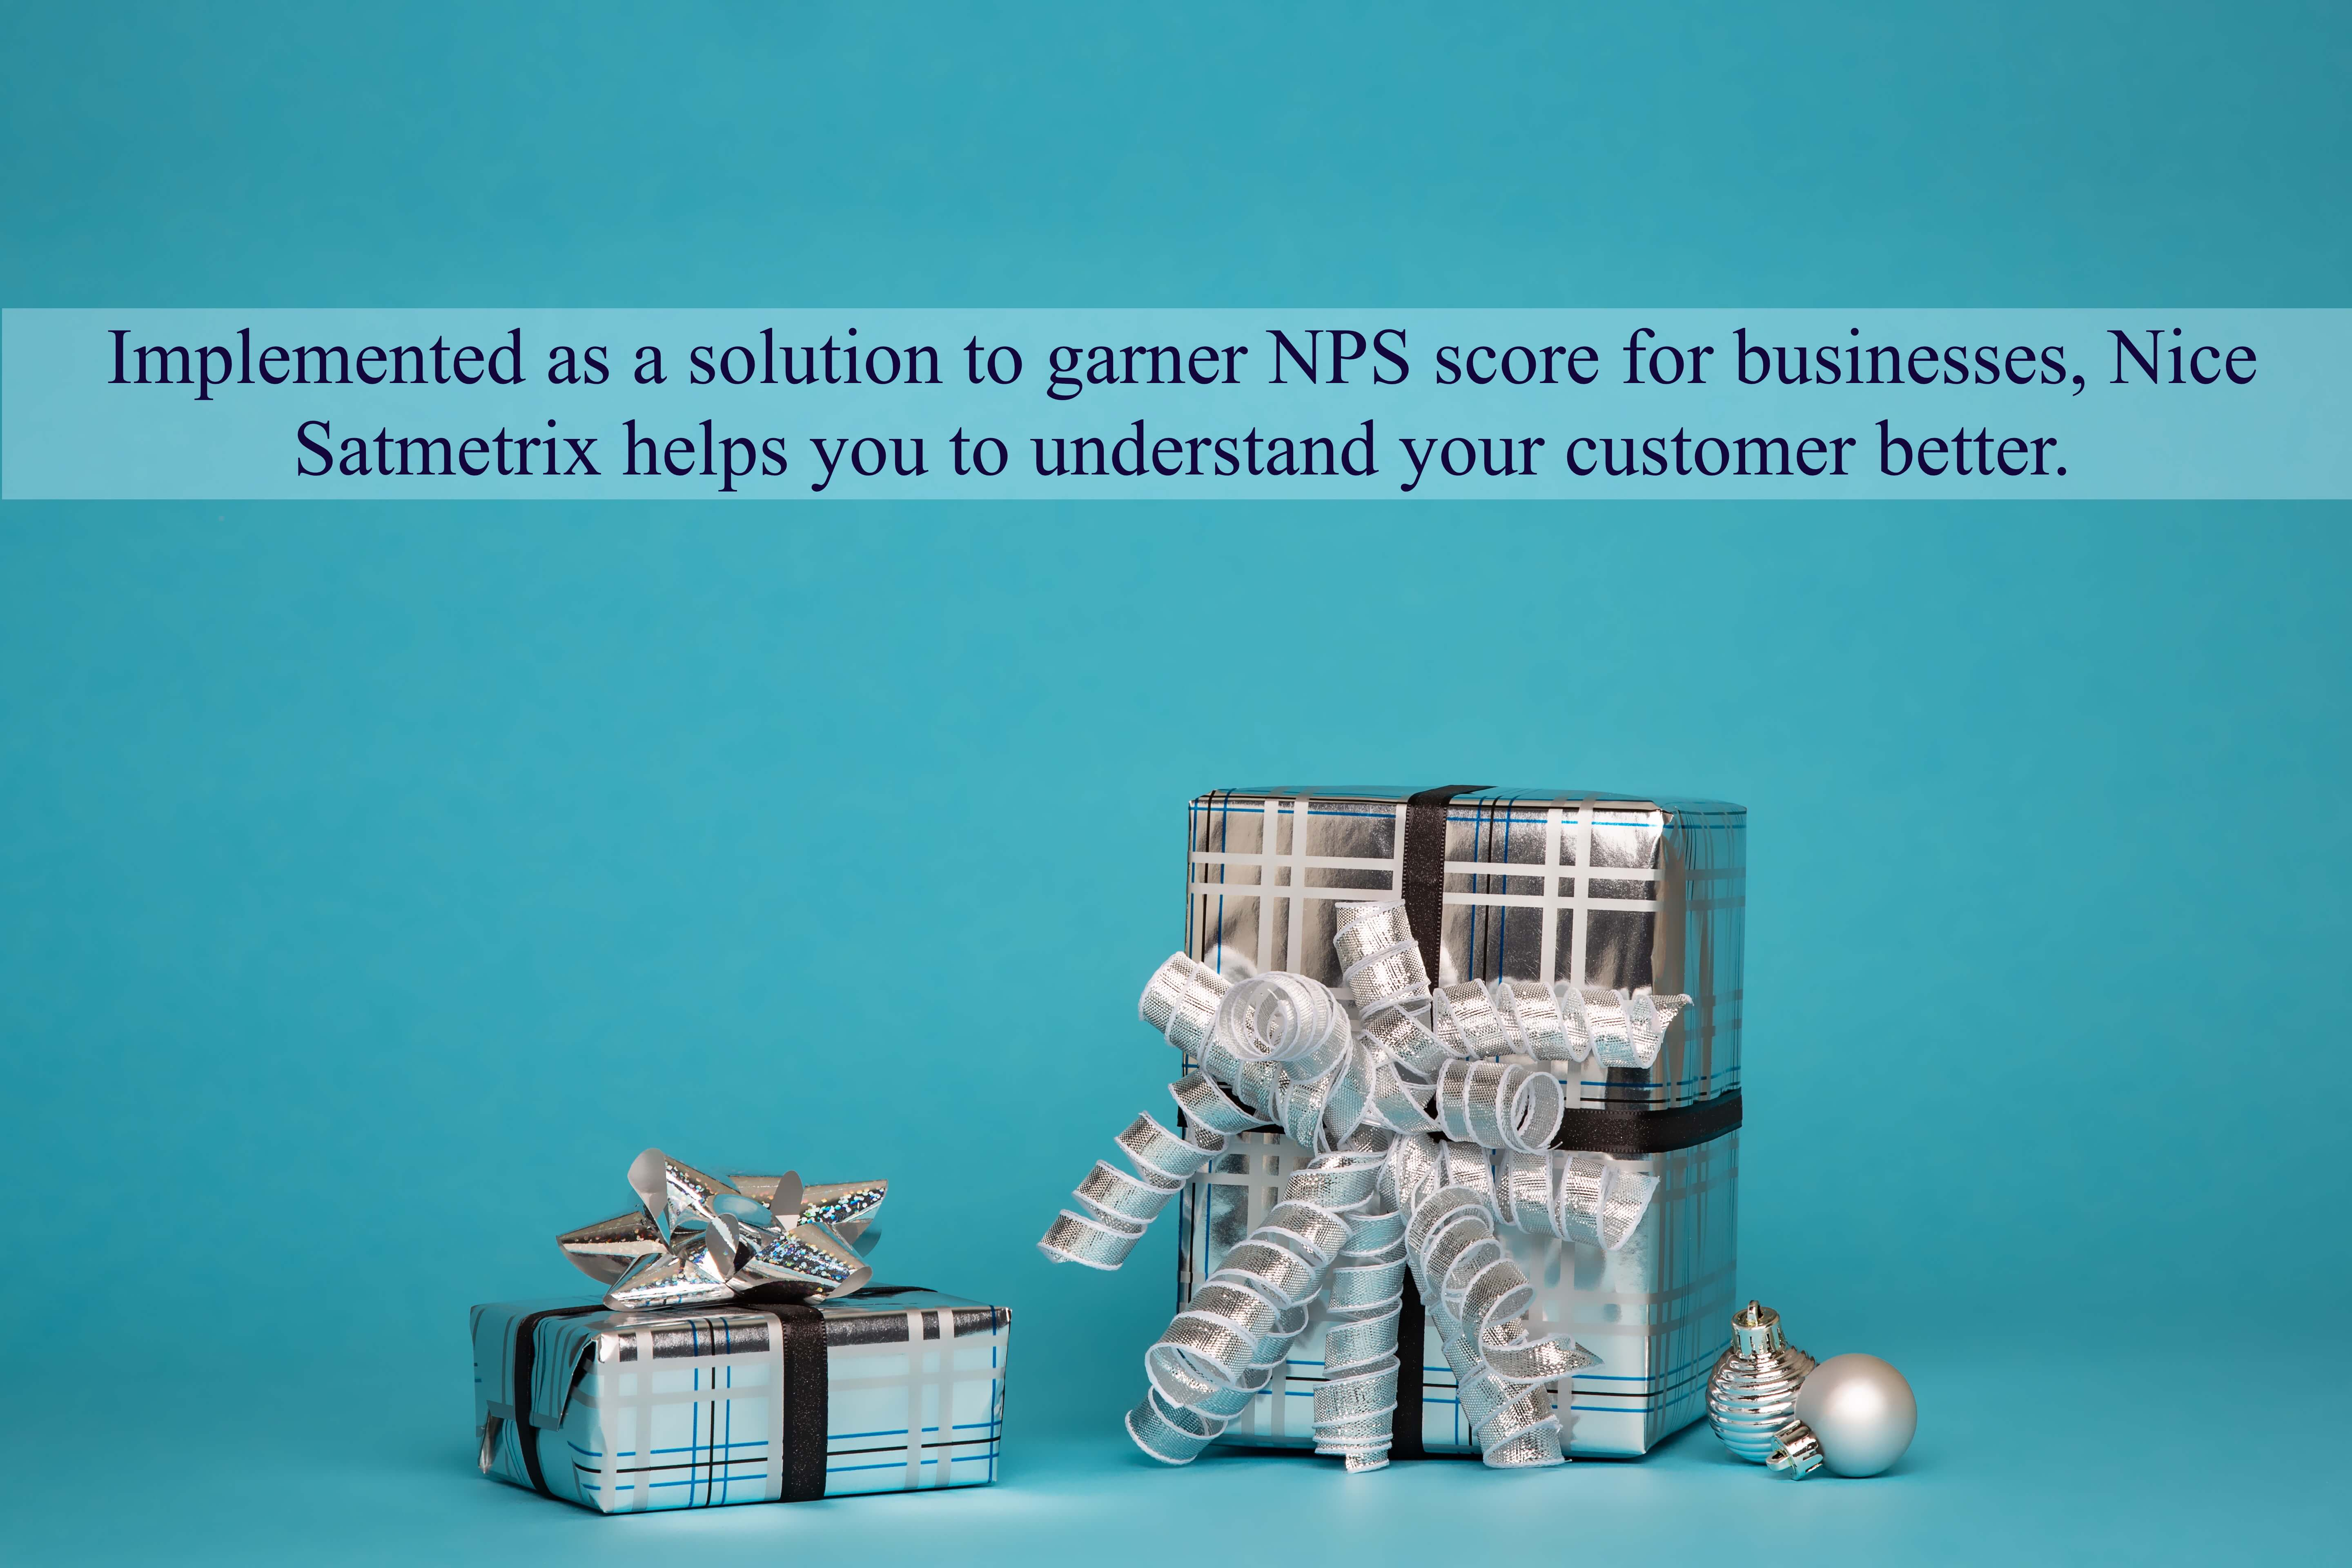 Implemented as a solution to garner NPS score for businesses, Nice Satmetrix helps you to understand your customer better.